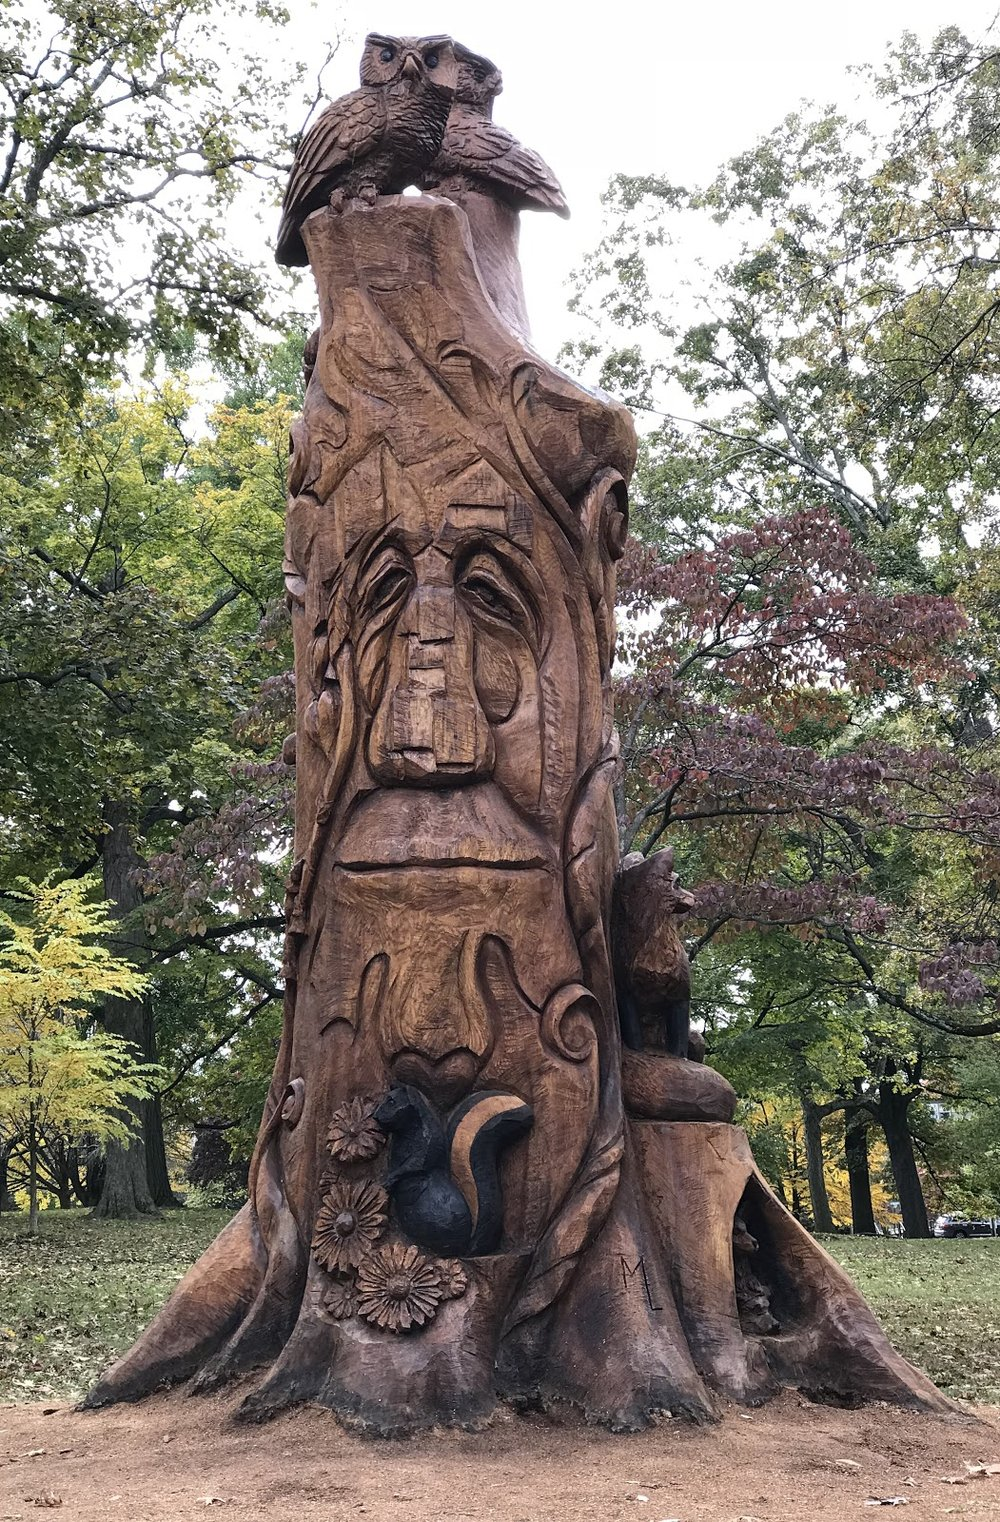 Beginning this fall, visitors of Marshall Square Park in West Chester can enjoy the meticulously carved statue of an 18-foot tall and over 125-year-old red oak. - After three weeks of laborious work, chainsaw artist Marty Long created a breathtaking sculpture from a newly cut down tree. The tree was planned originally to be taken down because of the danger it posed to pedestrians; however, the process was stopped before the job was complete due to issues with the contractor. The statue is now ornamented with various animals, and houses a friendly gnome. The extravagantly decorated tree brings a new aspect to life in the Borough as residents and visitors enjoy the view.